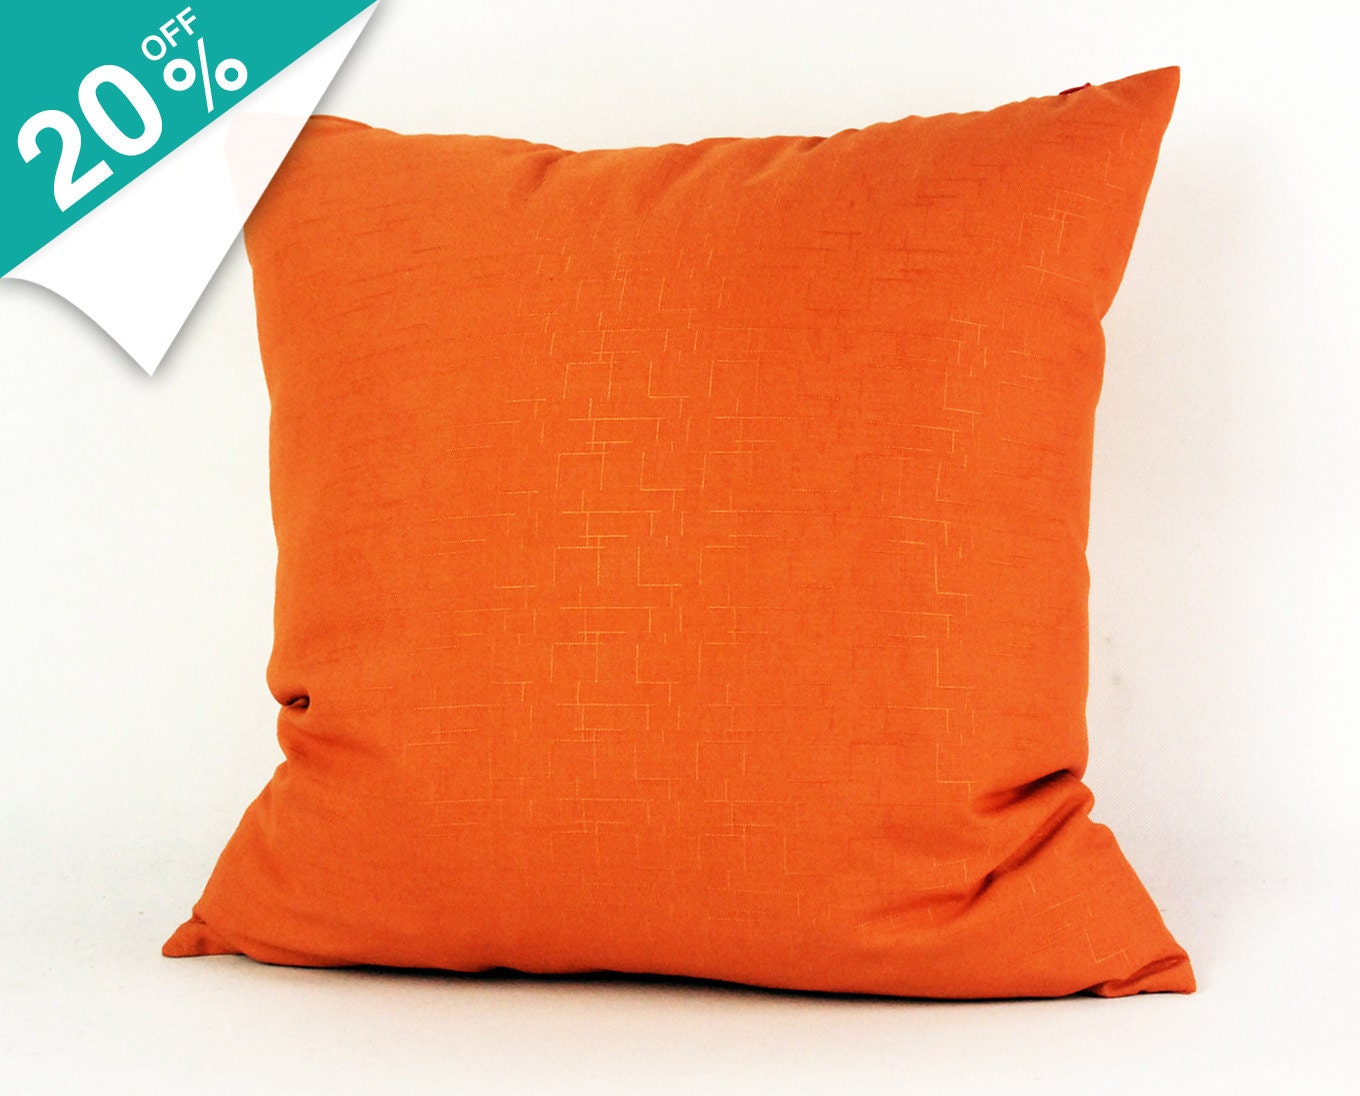 Throw Pillows With Orange : Free Shipping Orange Decorative Throw Pillows Pillow by FullHouses